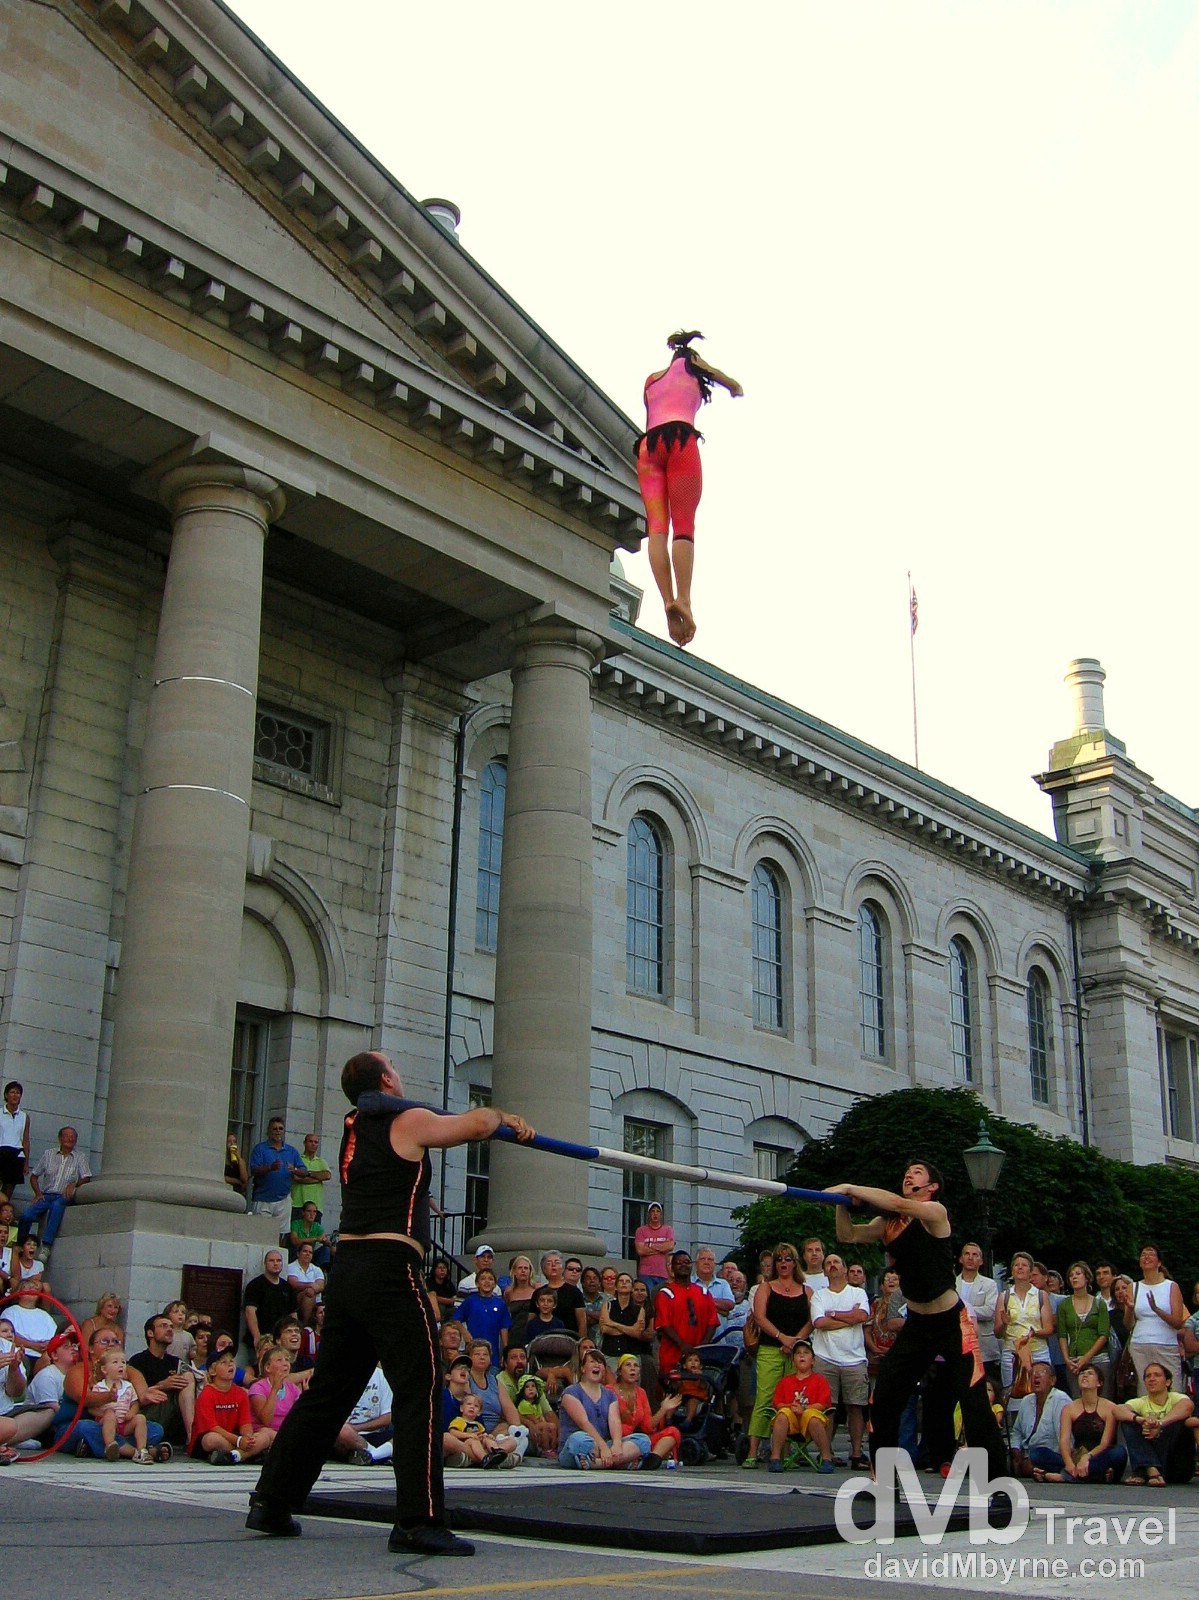 Buskerfest performers wow the crowds in front of City Hall in Kingston, Ontario, Canada. July 13th, 2006.